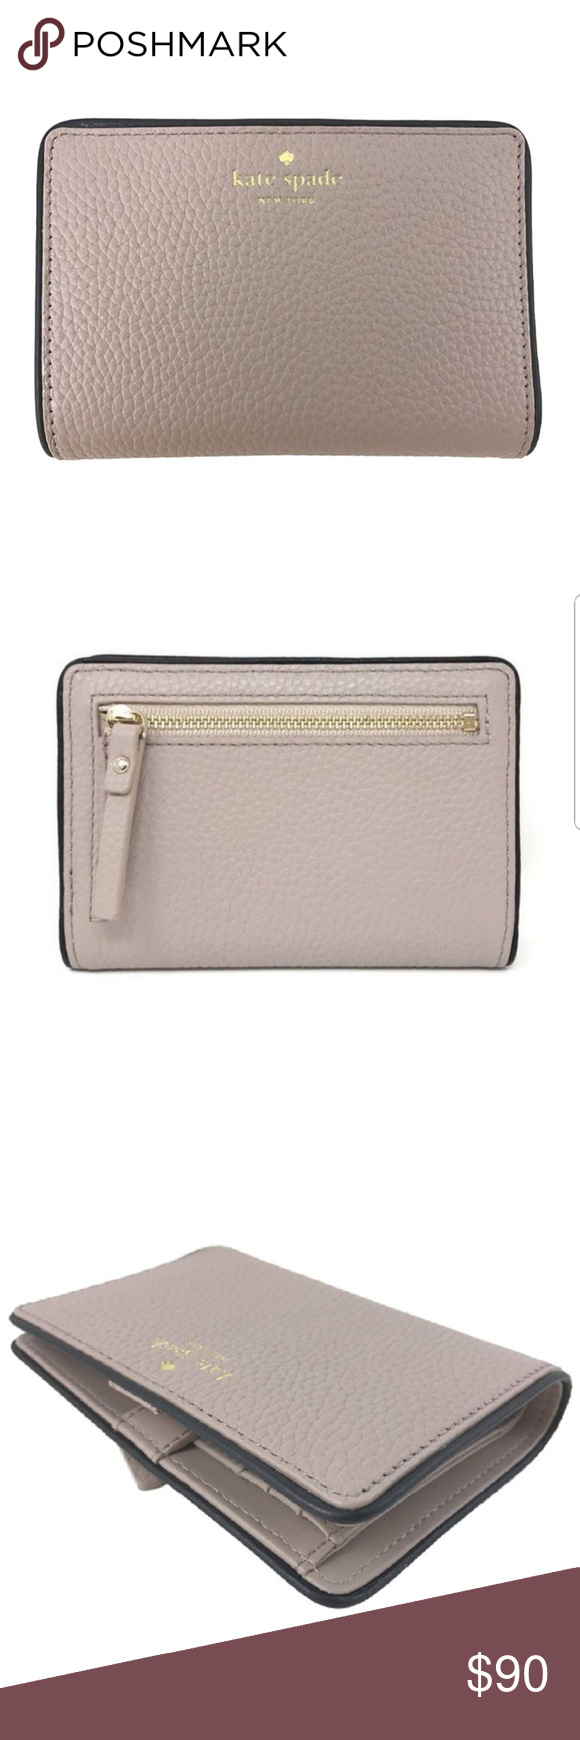 3d8d573aff47b NWT Kate Spade Tellie Chester Street Medium Wallet BRAND NEW WITH TAGS! KATE  SPADE NEW